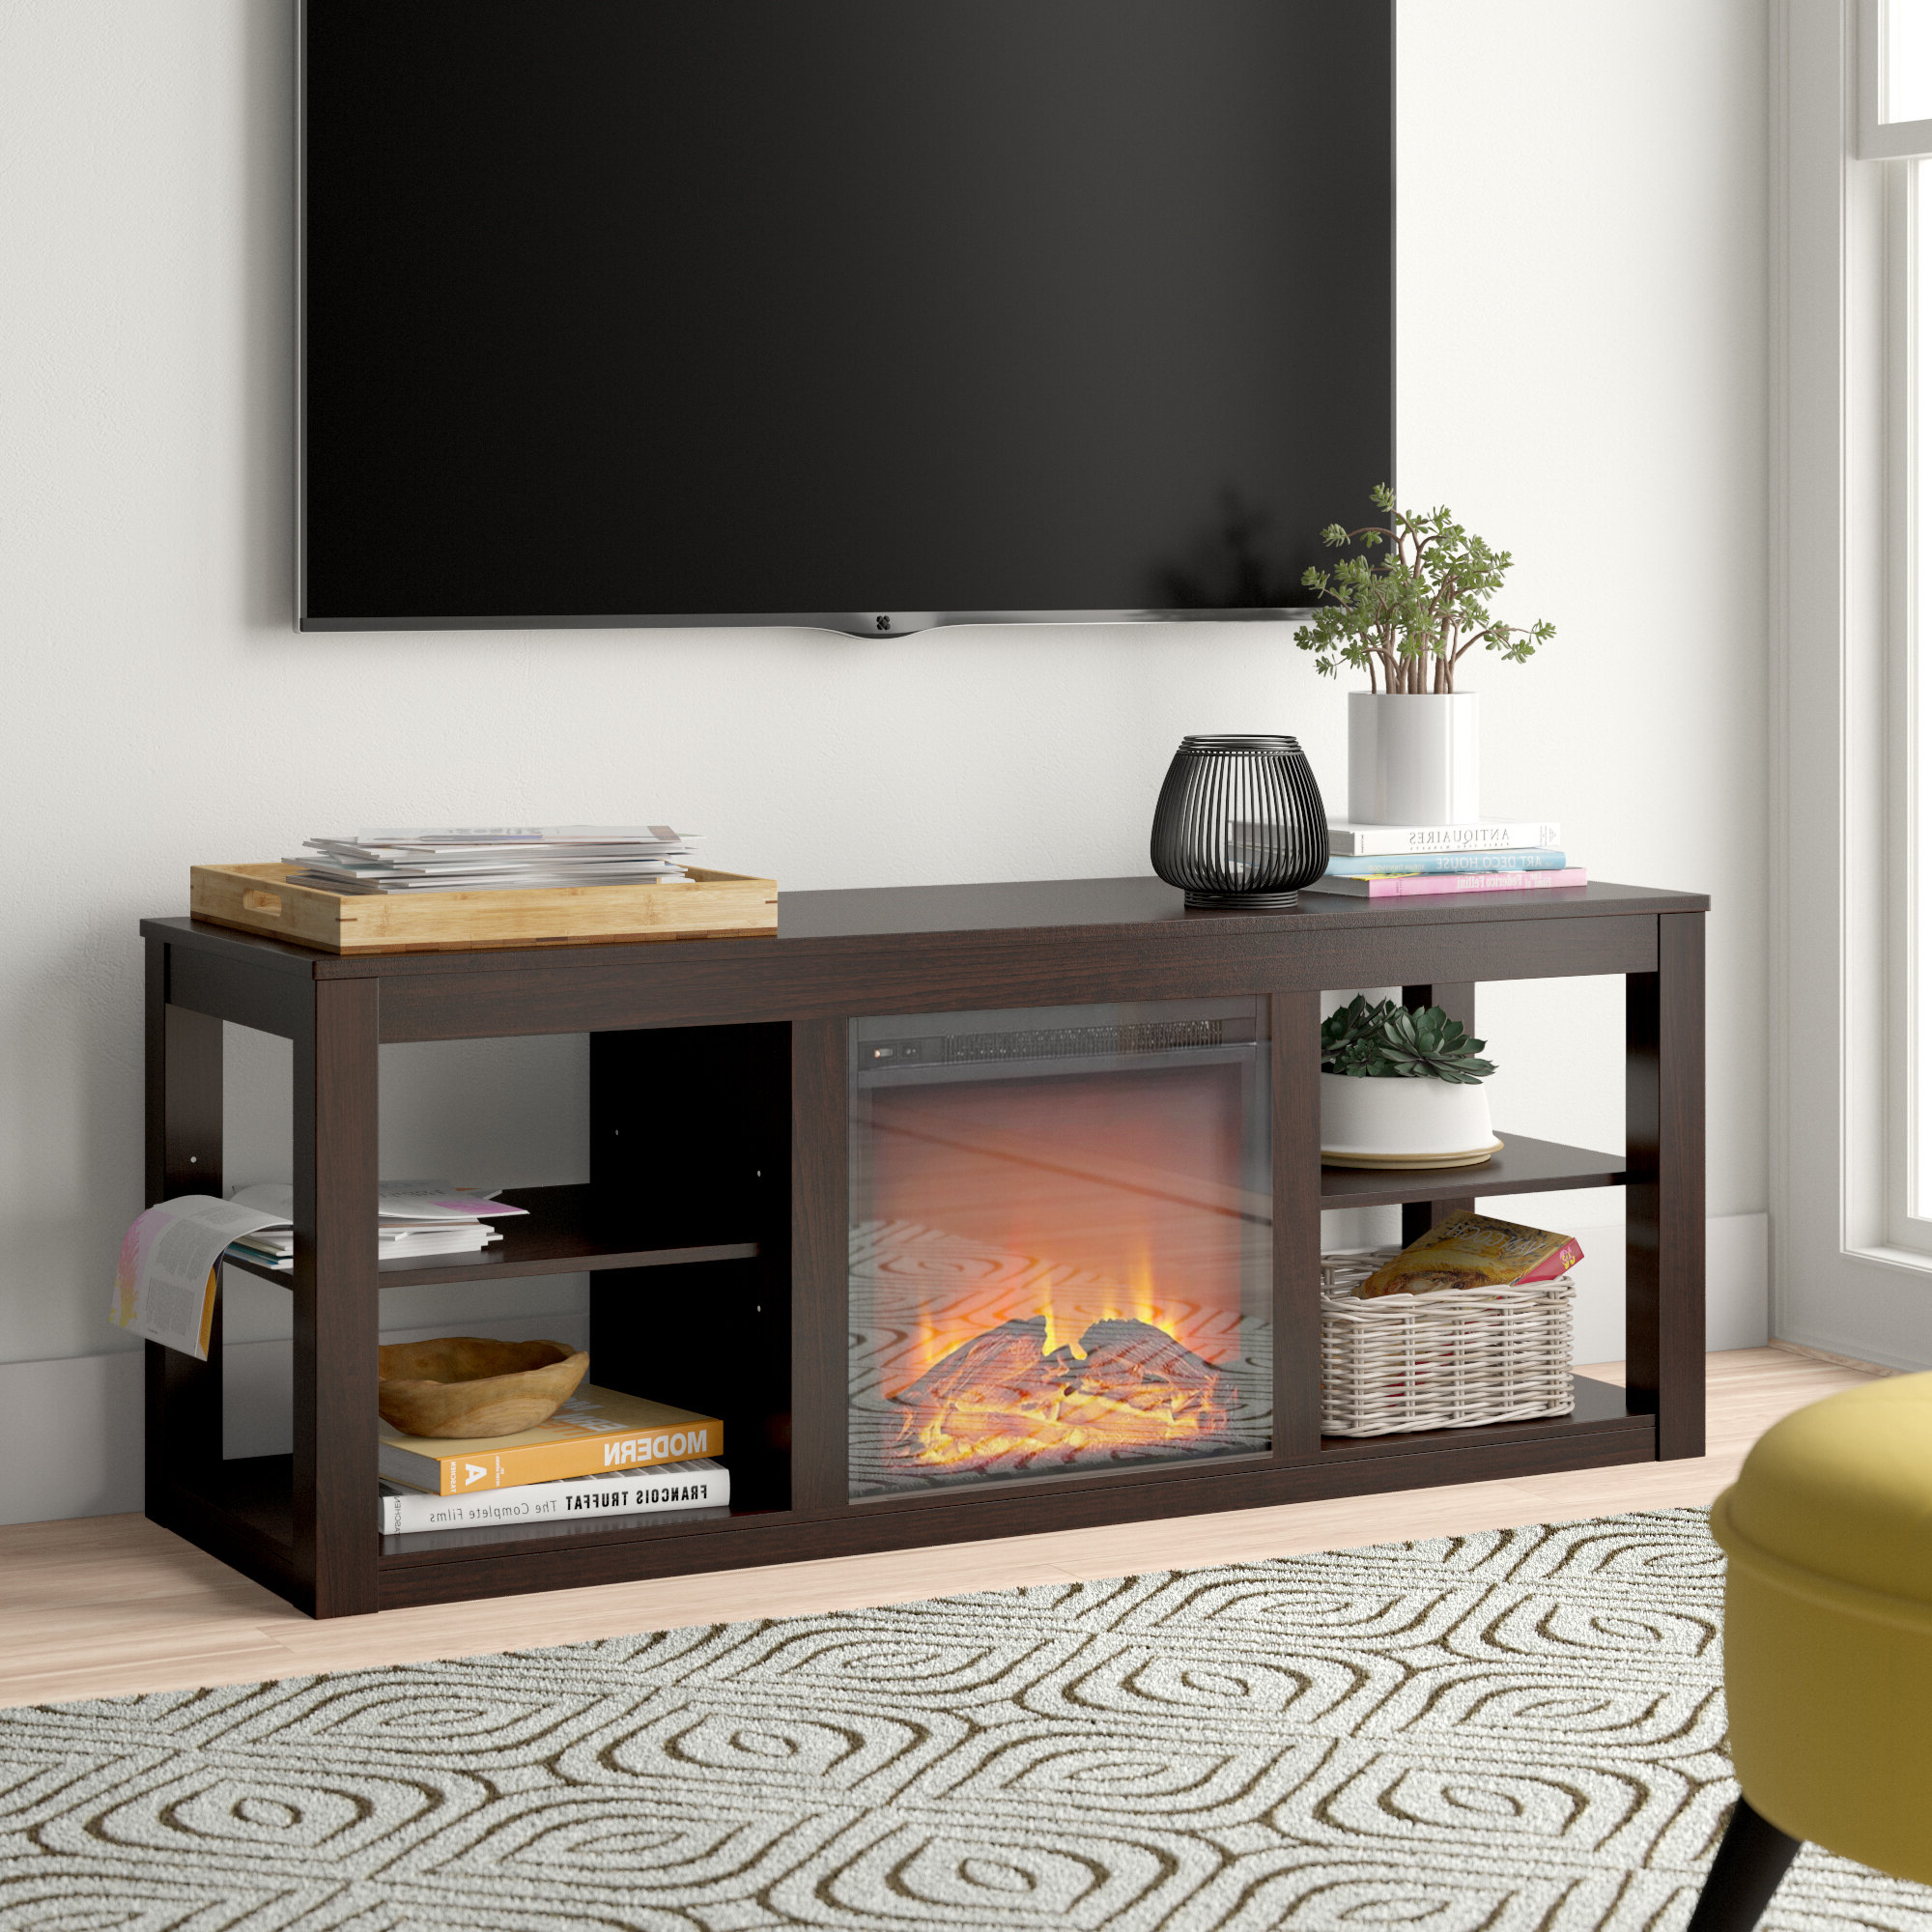 """65 Inch Tv Stand With Fireplace – Ideas On Foter Regarding Chicago Tv Stands For Tvs Up To 70"""" With Fireplace Included (View 9 of 20)"""